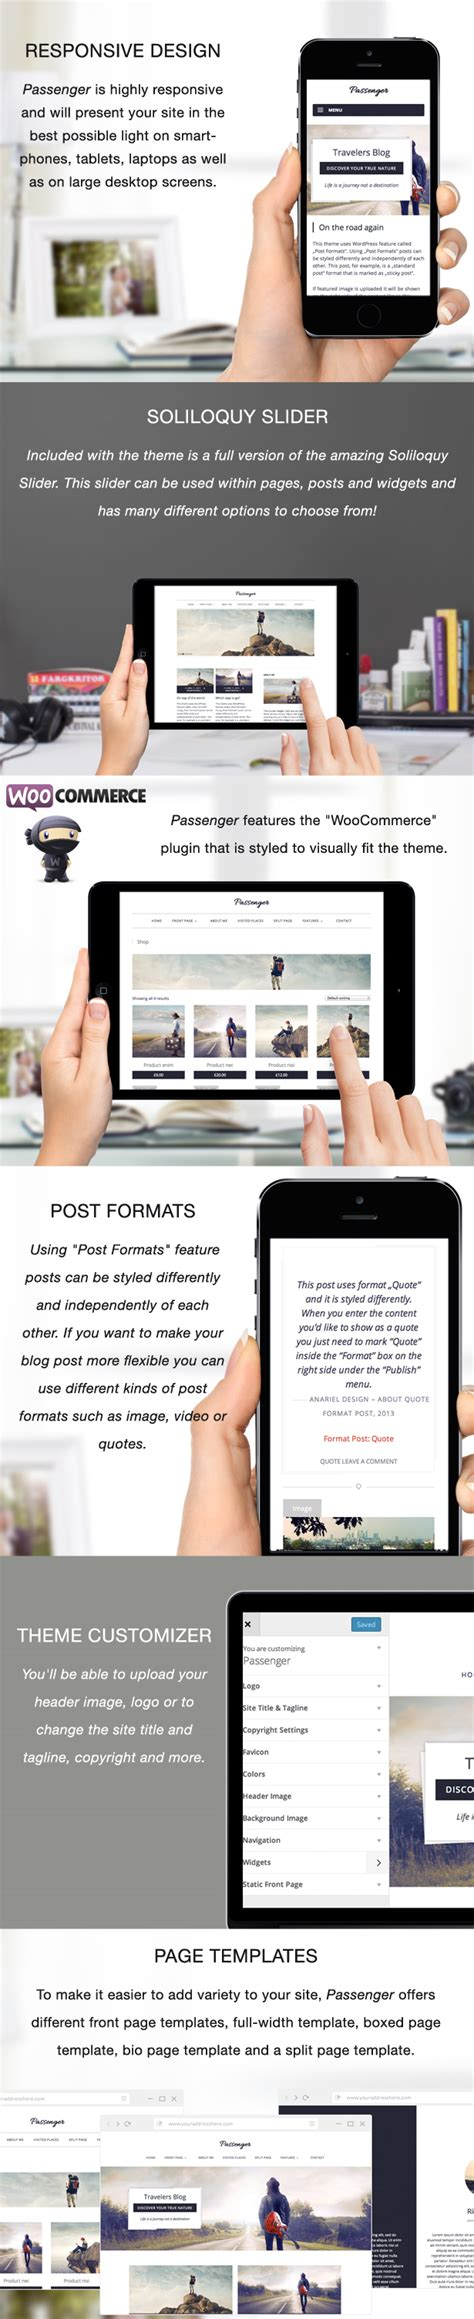 design themes core features plugin wordpress passenger travelers wordpress theme wordpress